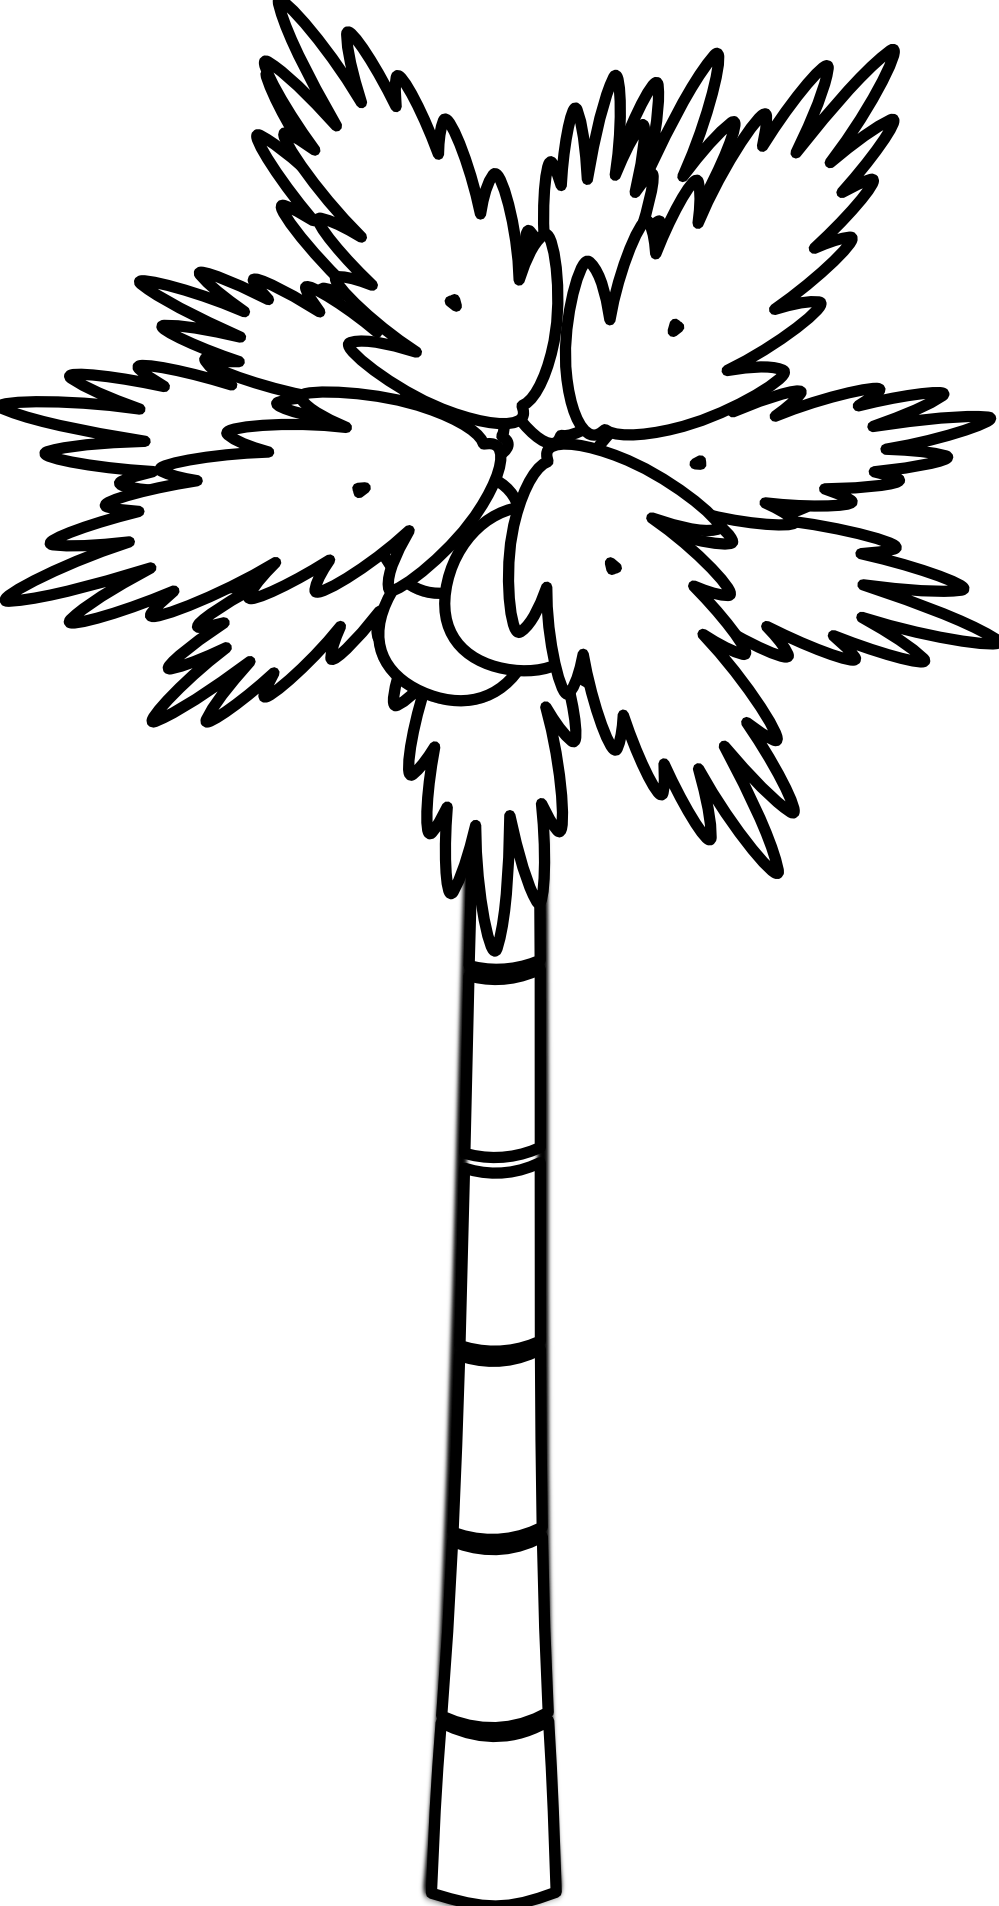 Palm tree clipart black and white no background image library library Free Tree Drawings Black And White, Download Free Clip Art, Free ... image library library